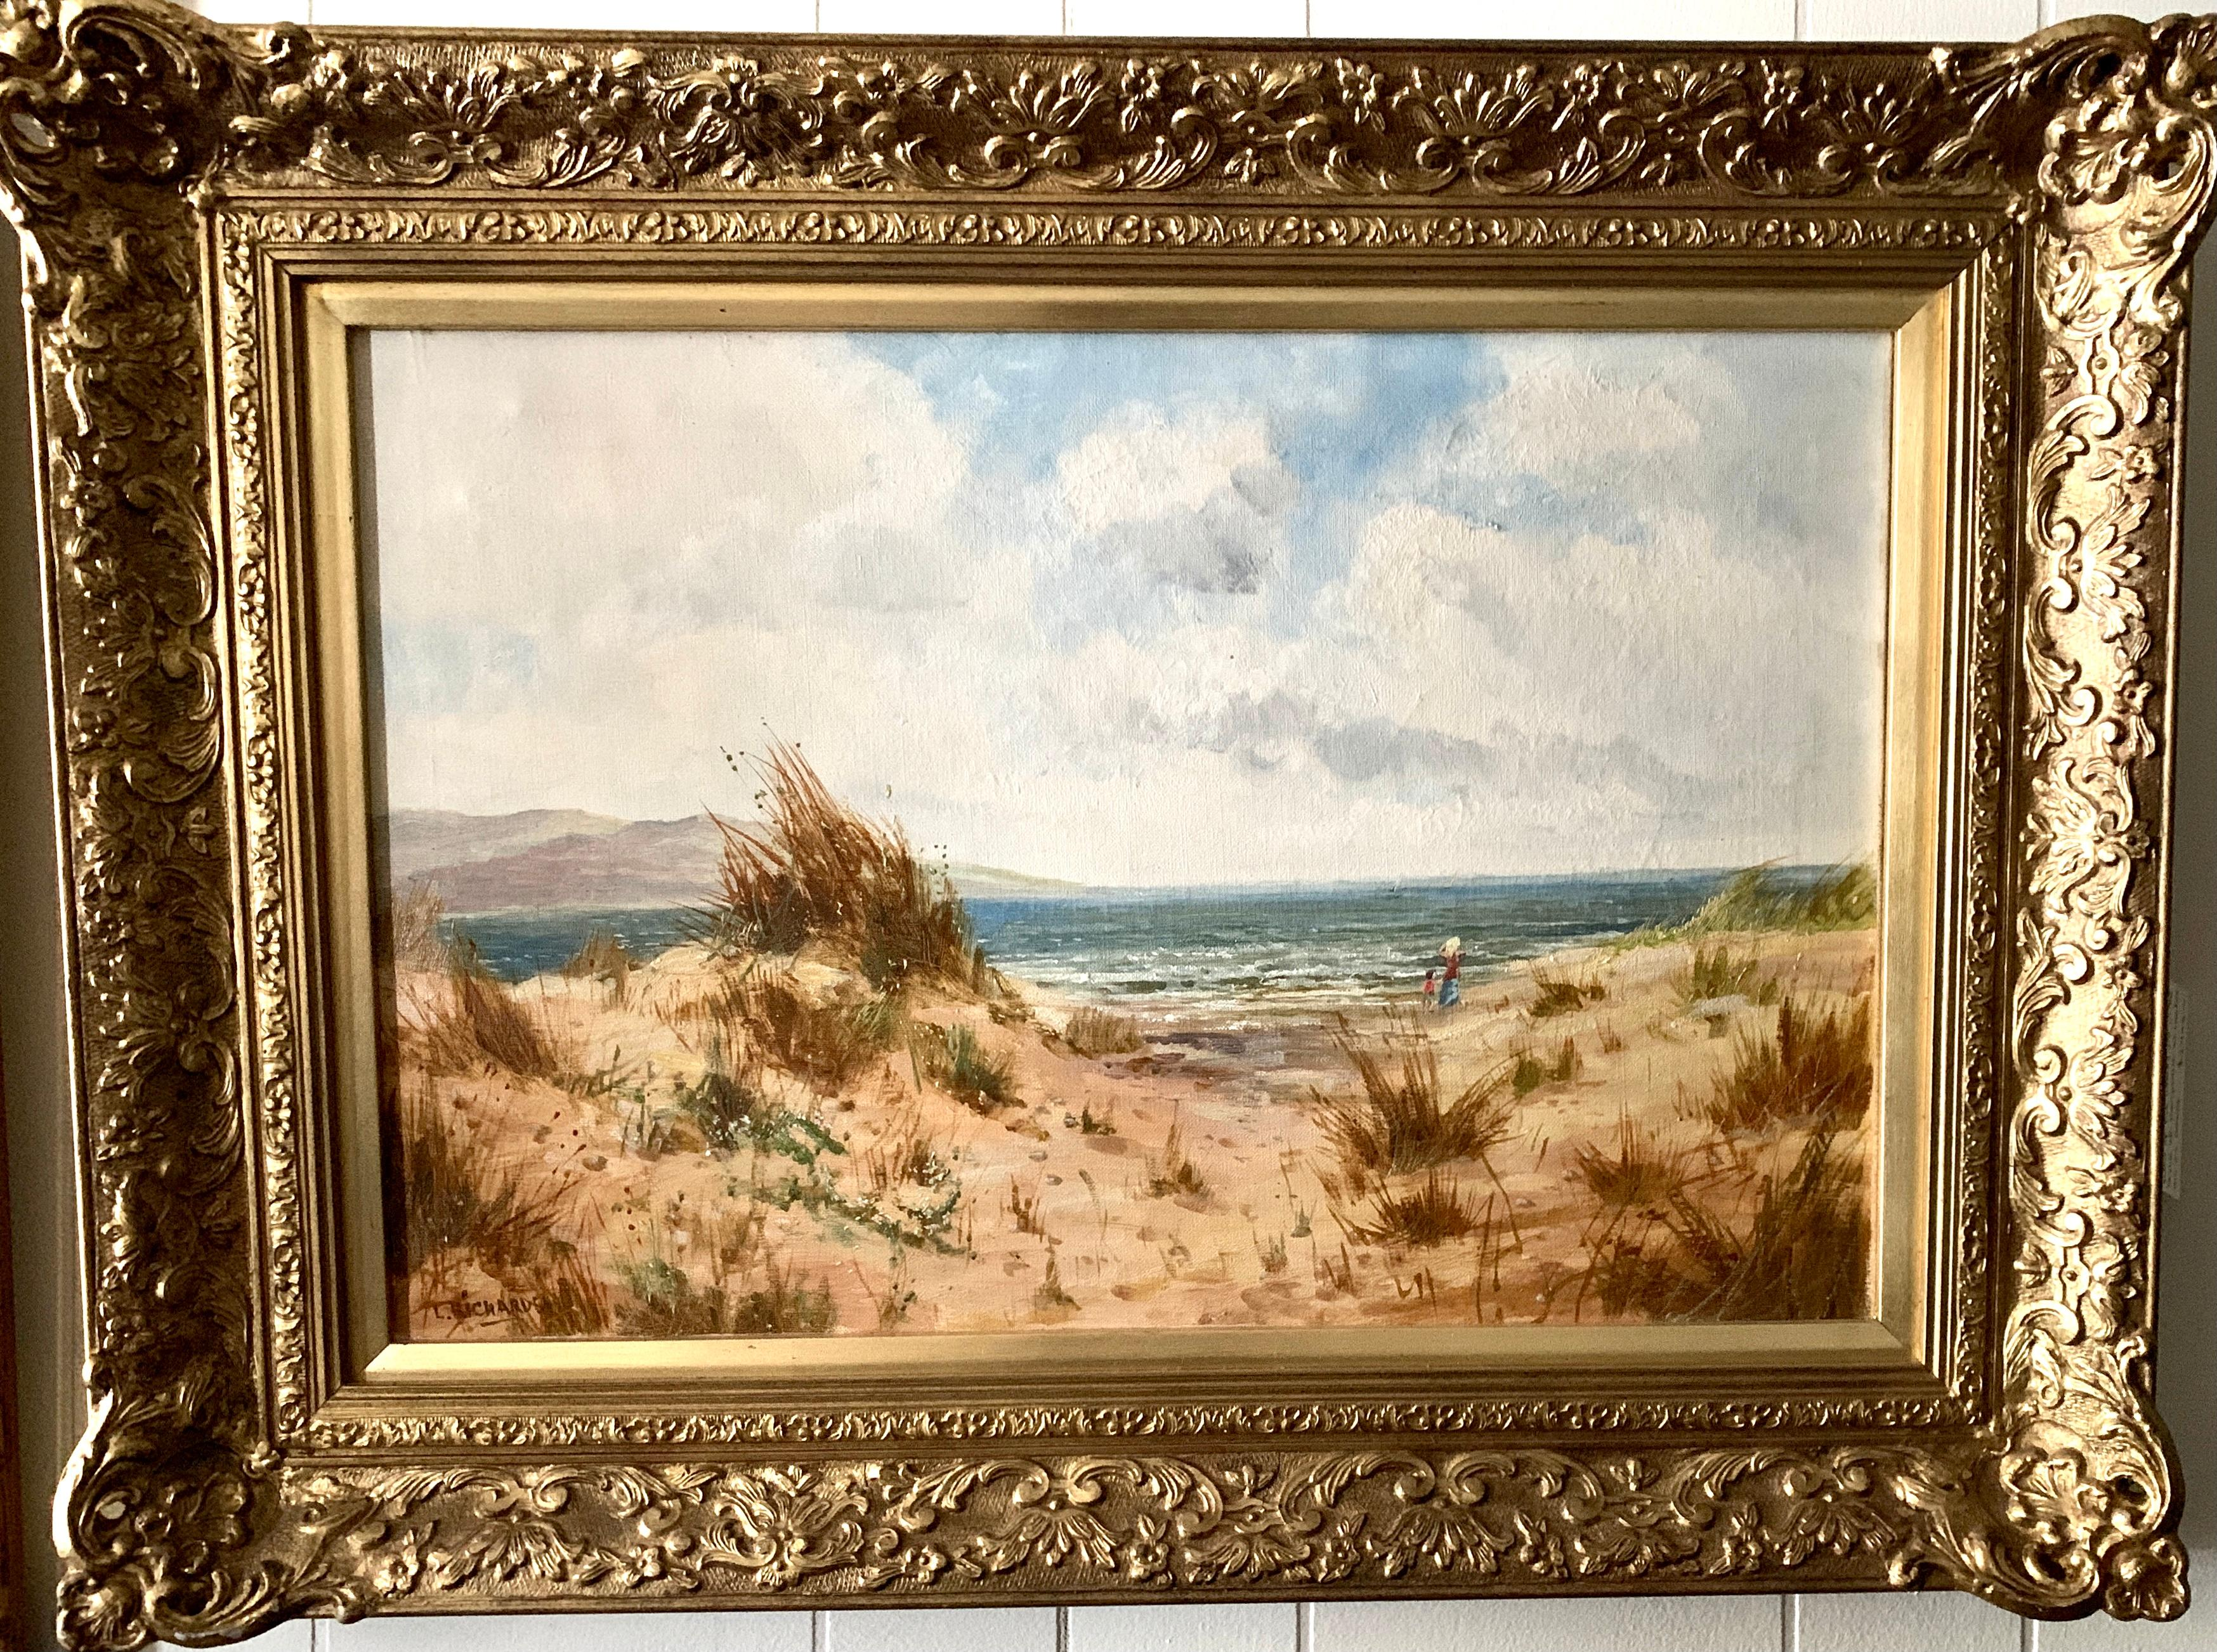 Antique oil on canvas, English beach scene, with sand dunes and people walking